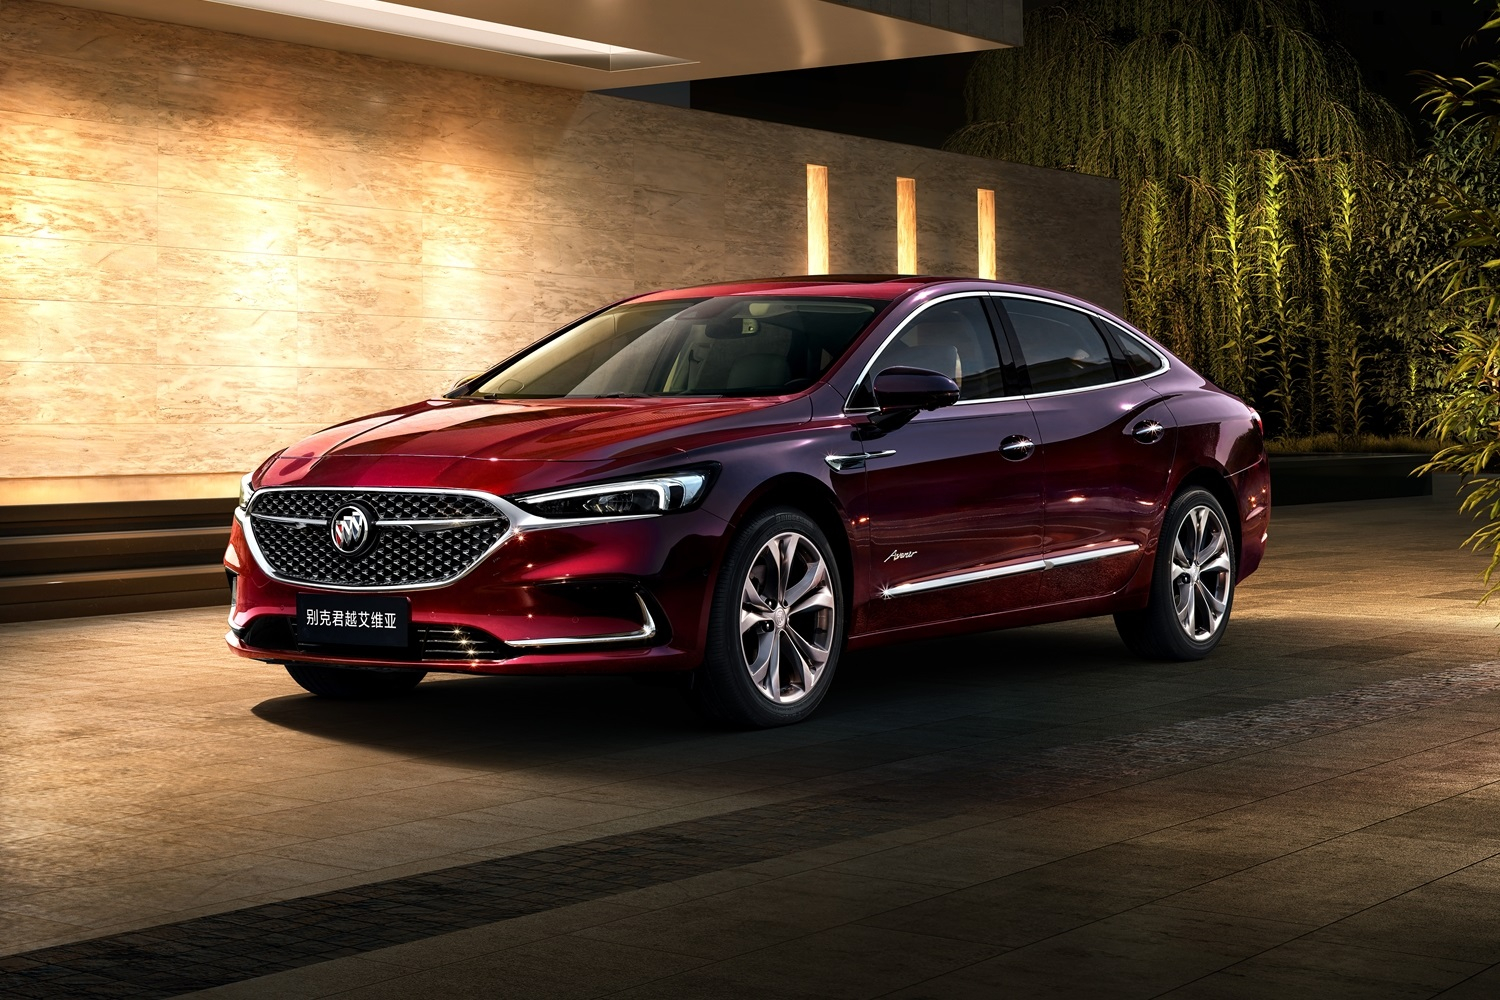 2021 Buick Lacrosse Gets More Refined Than Ever | Gm Authority 2022 Buick Lacrosse Price, Gas Mileage, Horsepower